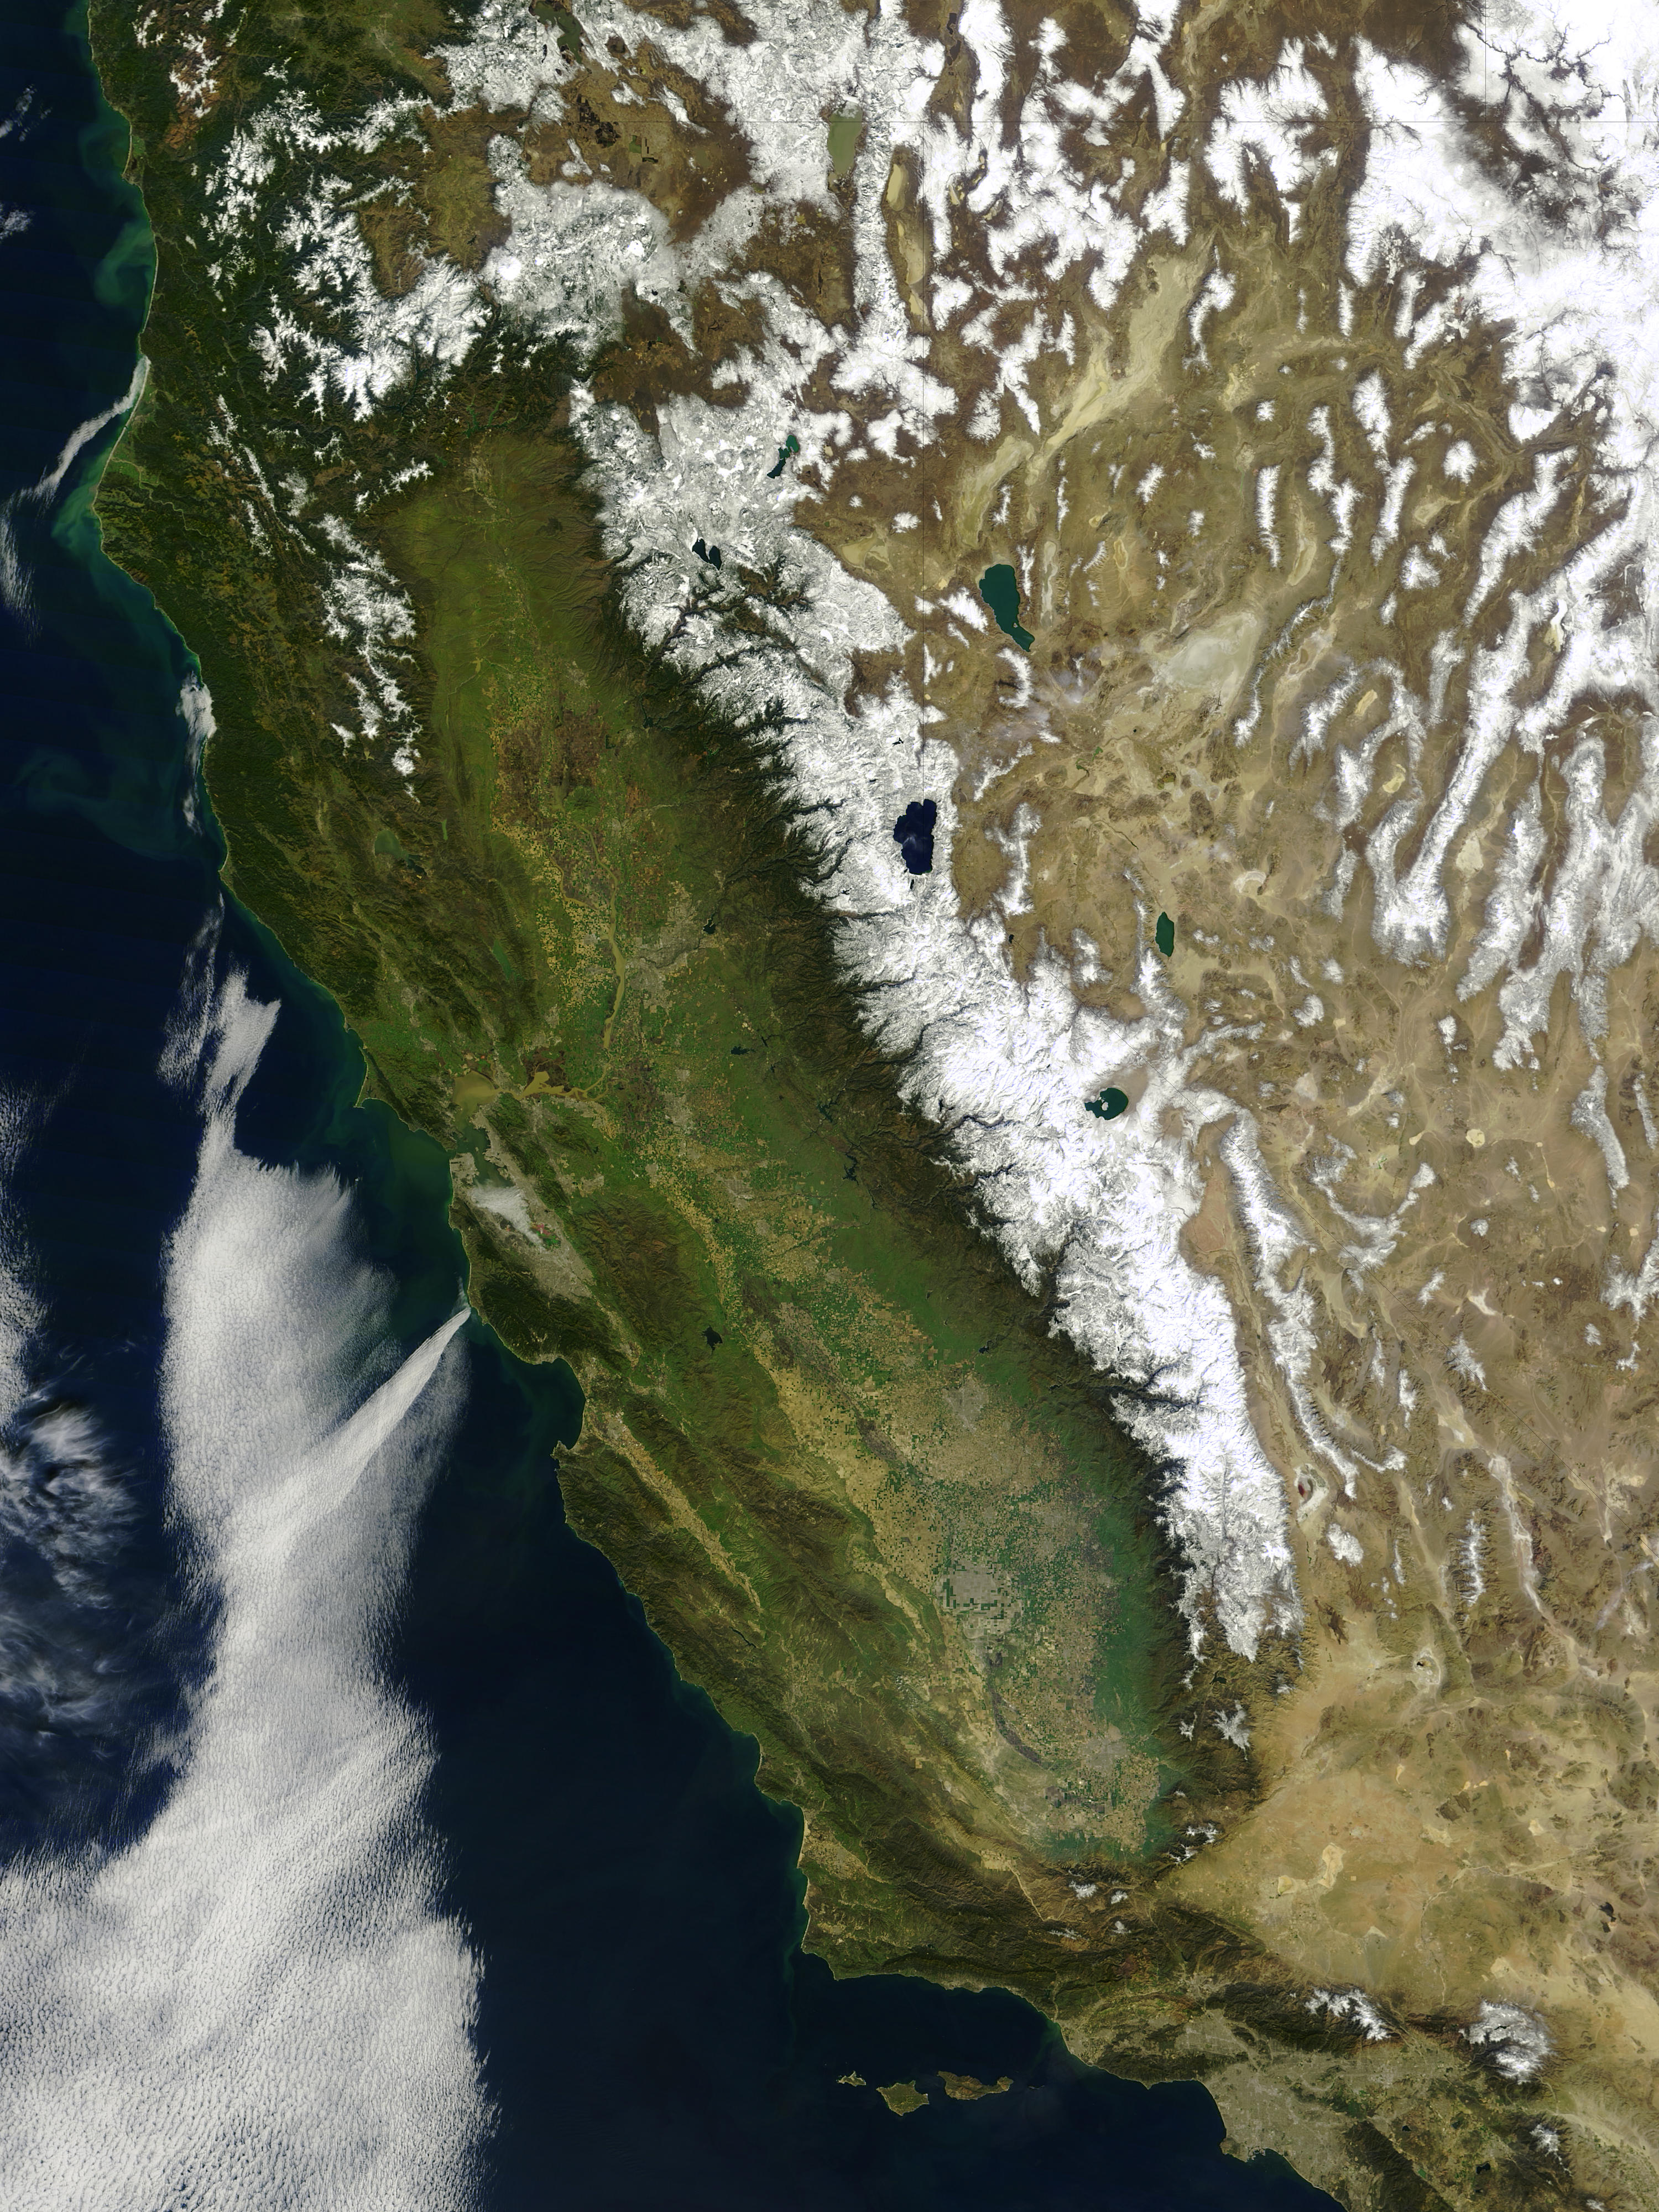 Snow and floods in California